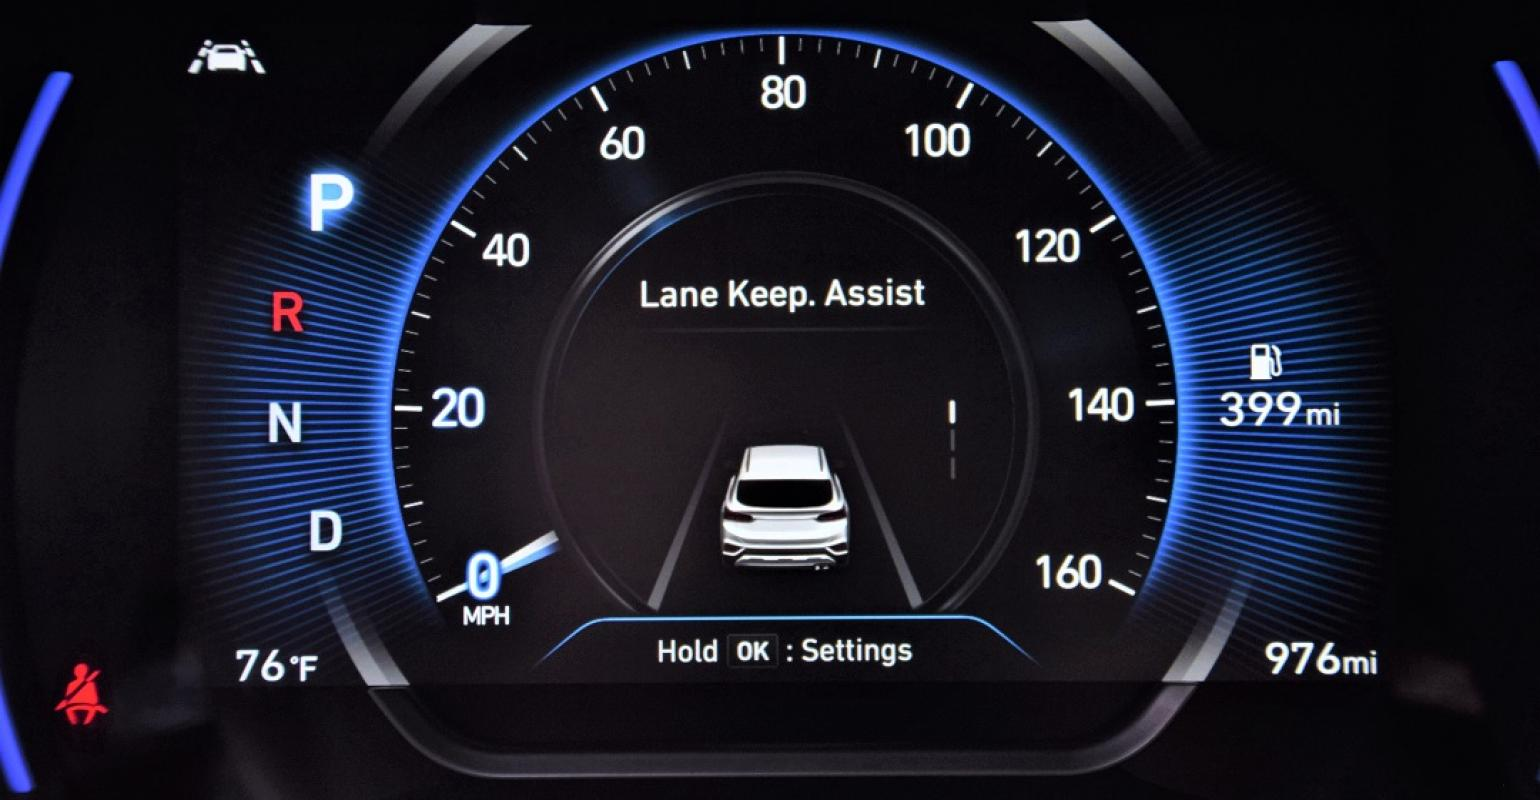 Lane Keep Assist >> 2019 Hyundai Santa Fe Delivers Best Value Proposition Yet Wardsauto